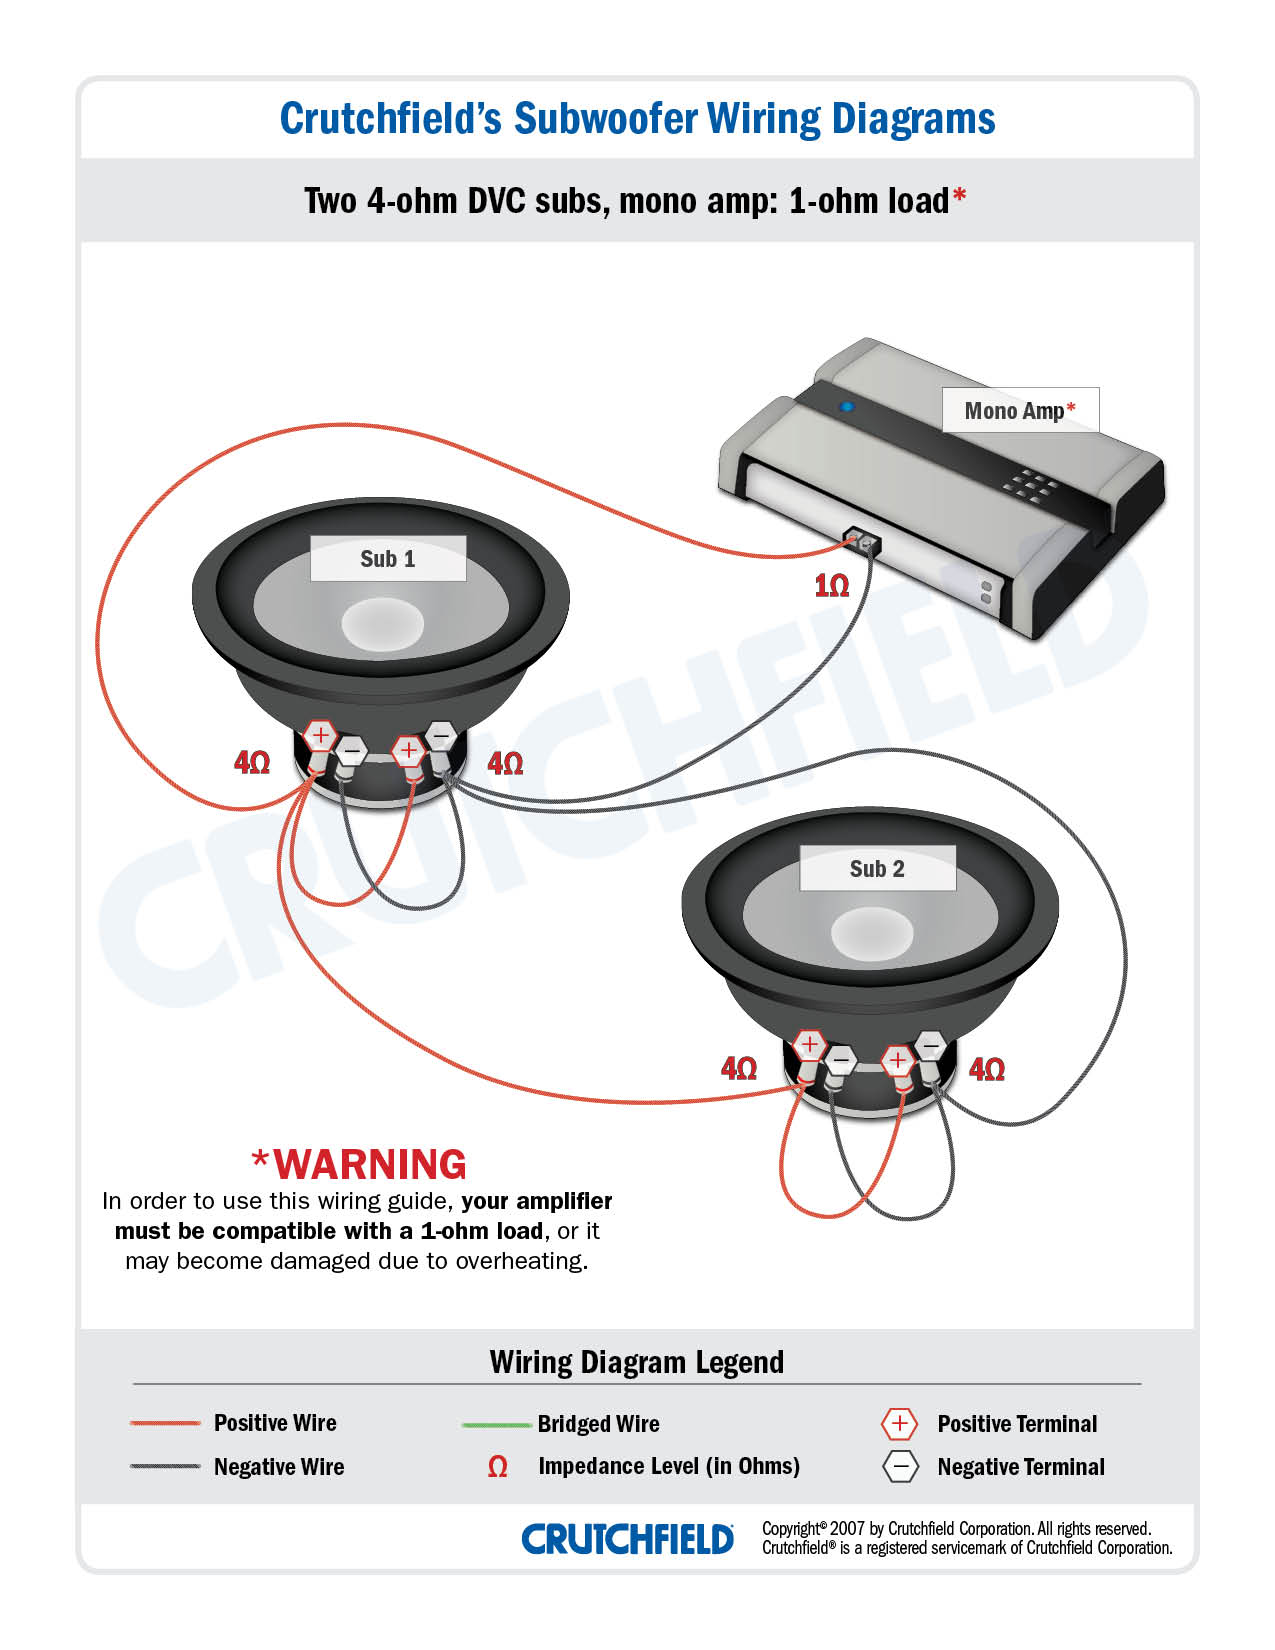 Marvelous Subwoofer Wiring Diagrams How To Wire Your Subs Wiring Cloud Hisonuggs Outletorg